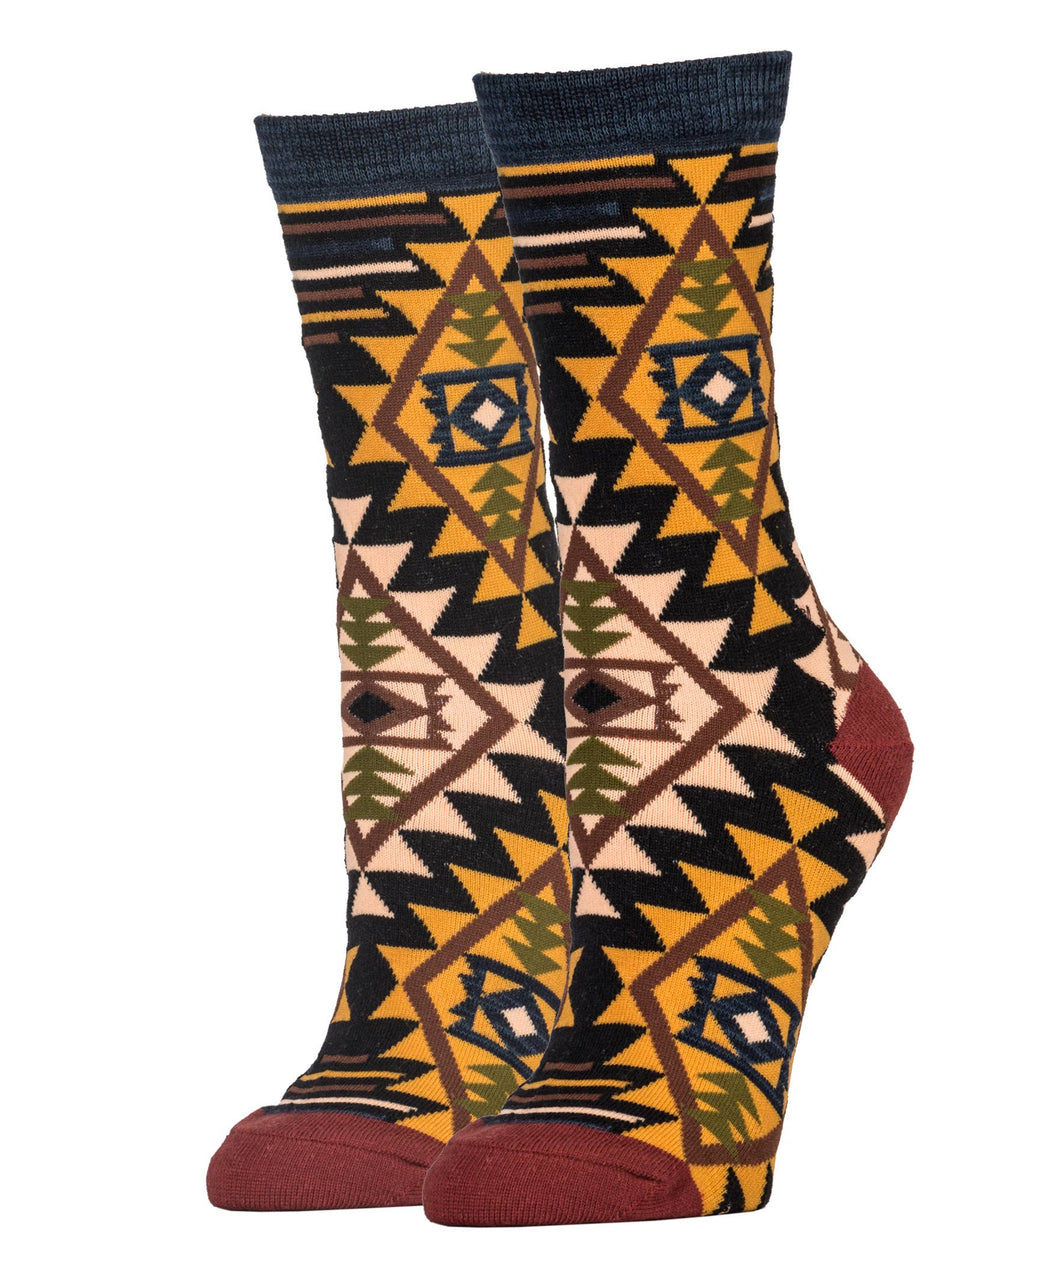 A Southwestern print sock in warm colors